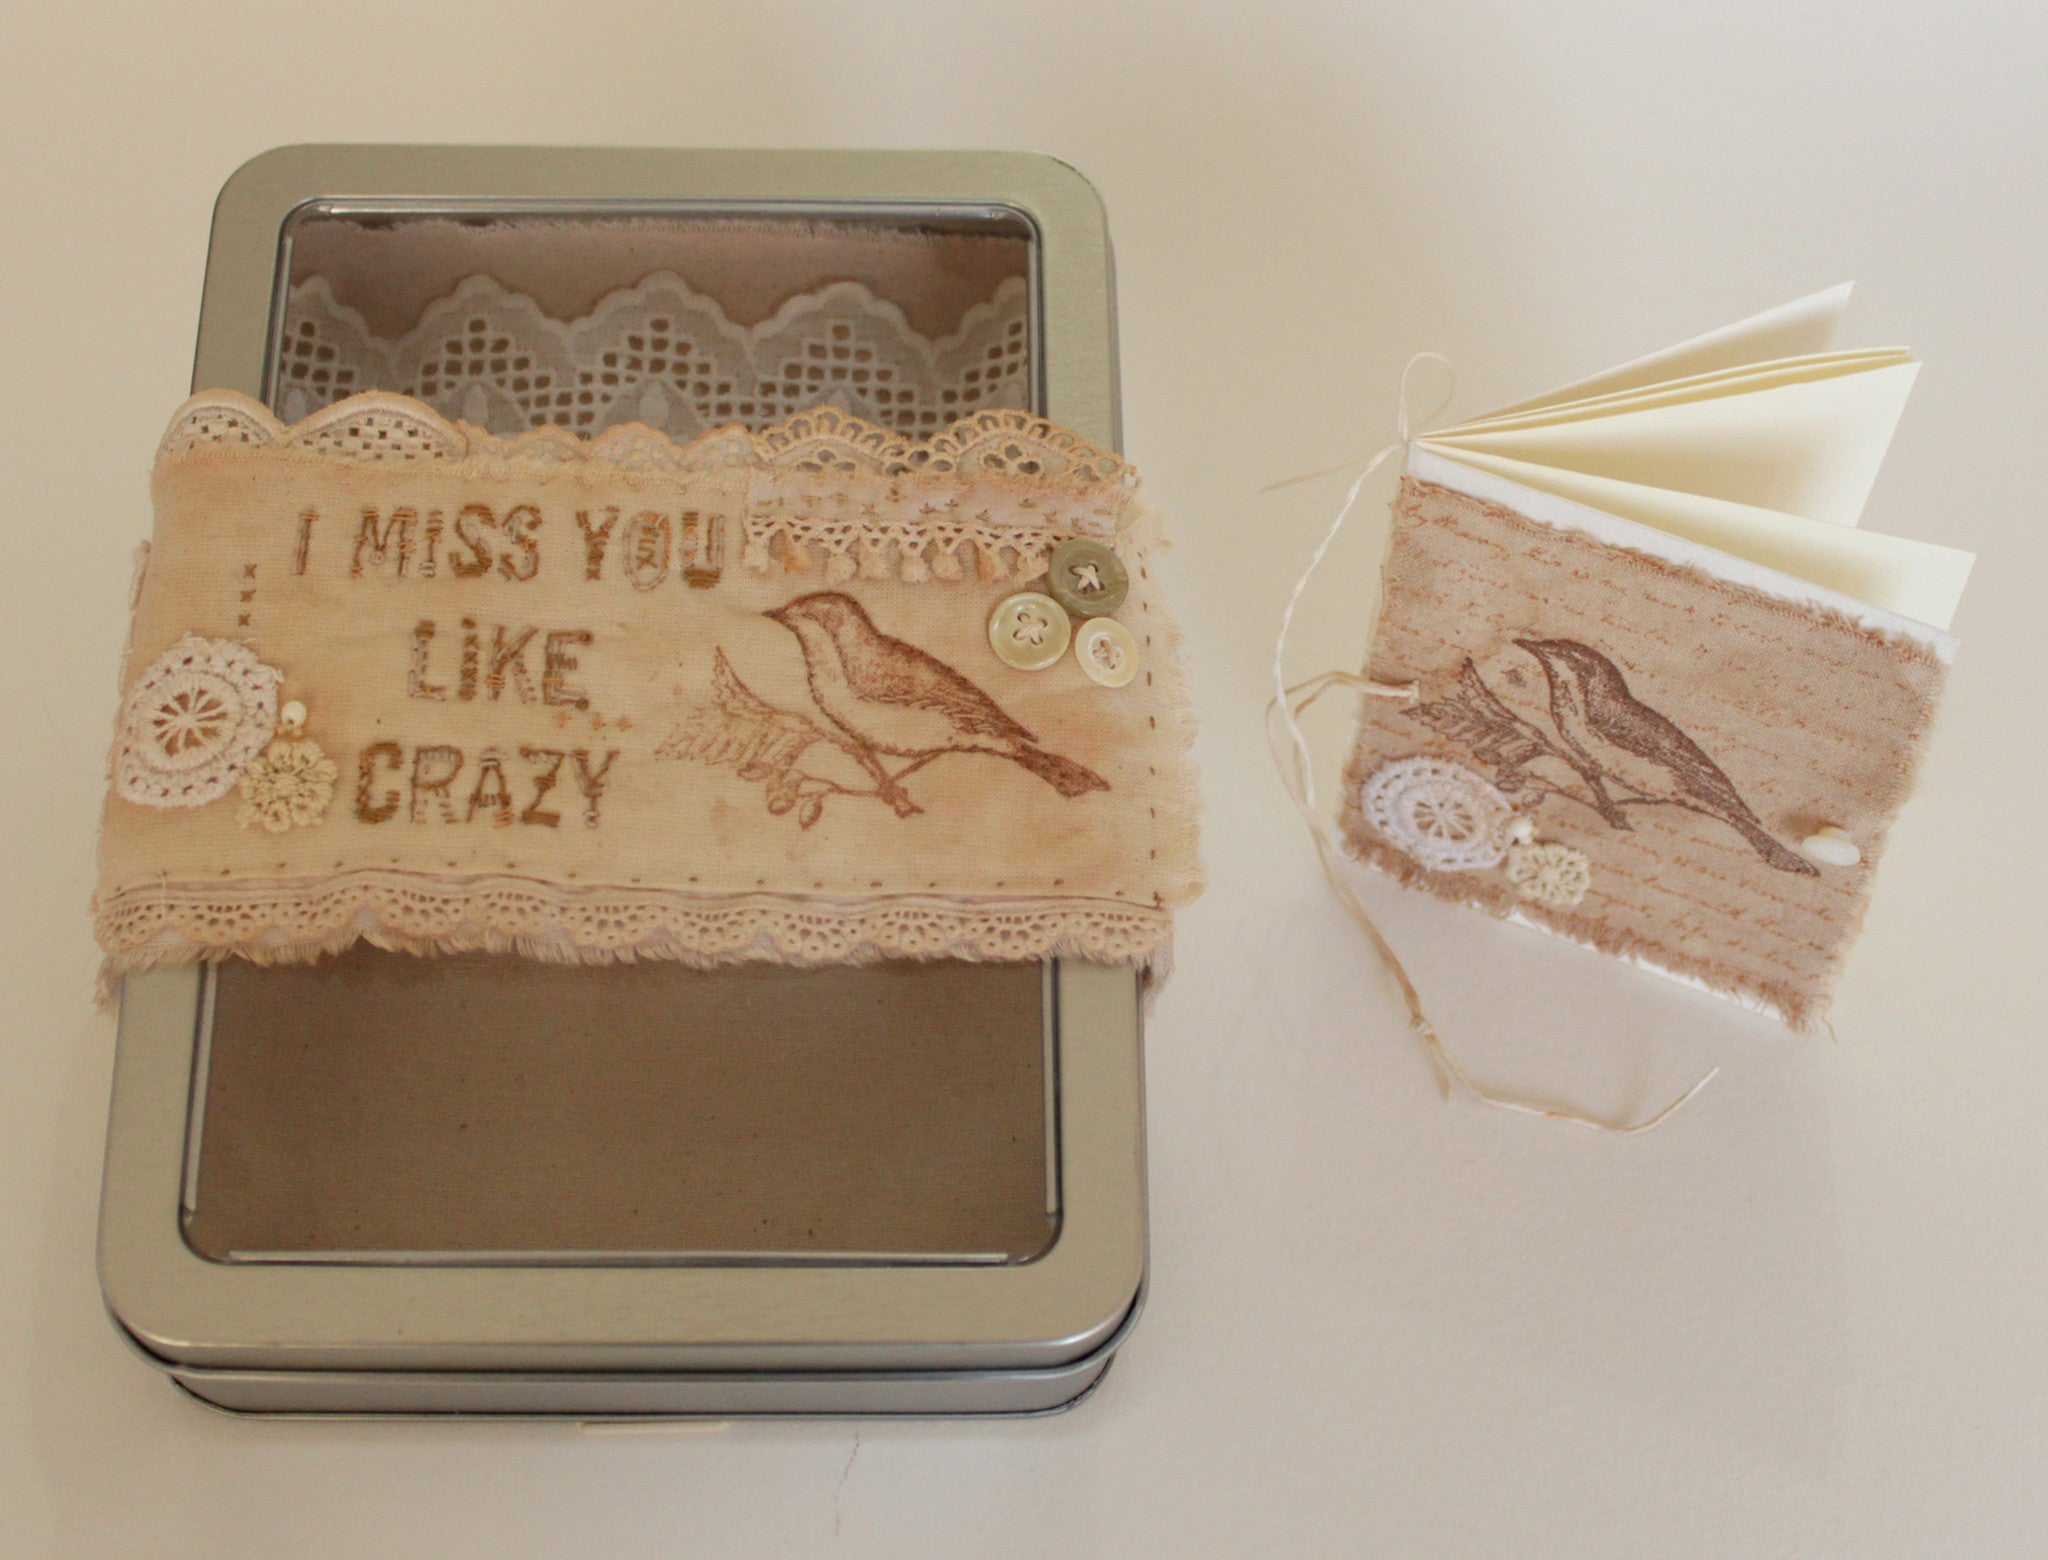 OOAK tin box gift set -- I MISS YOU LIKE CRAZY -- LOVE IN A BOX